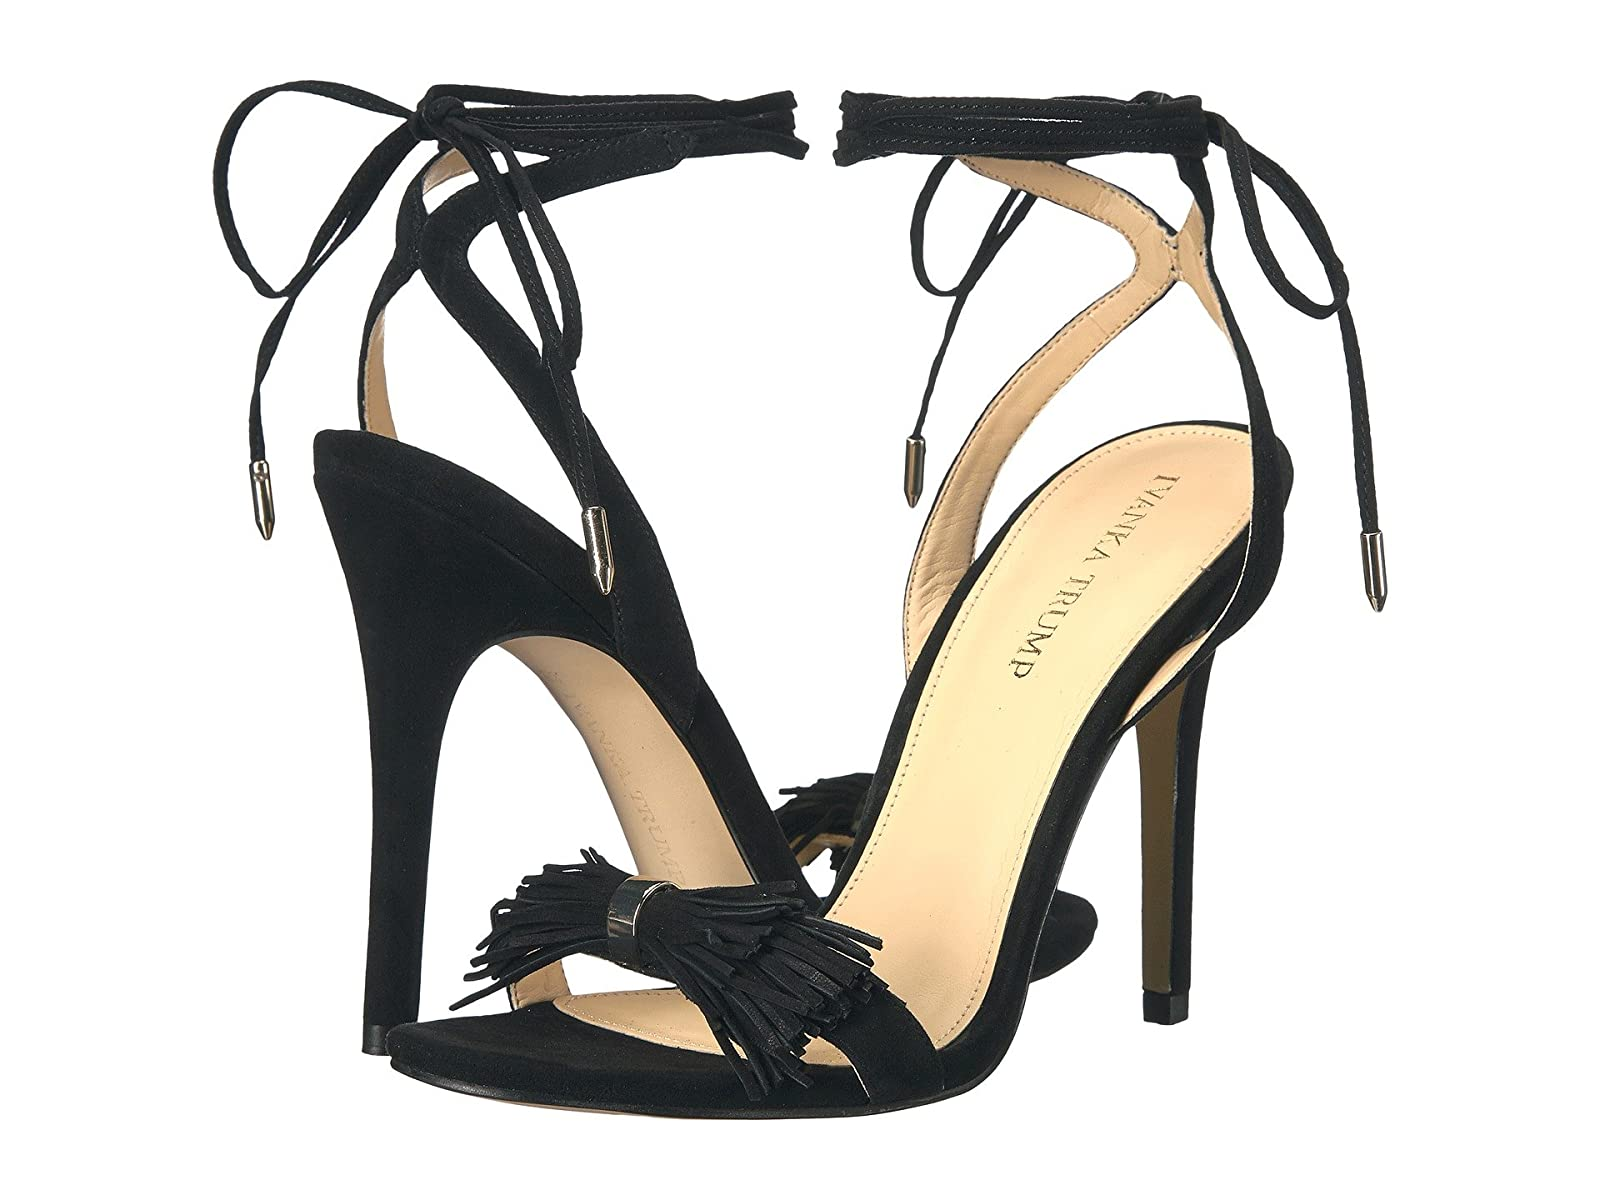 Ivanka Trump HethalCheap and distinctive eye-catching shoes